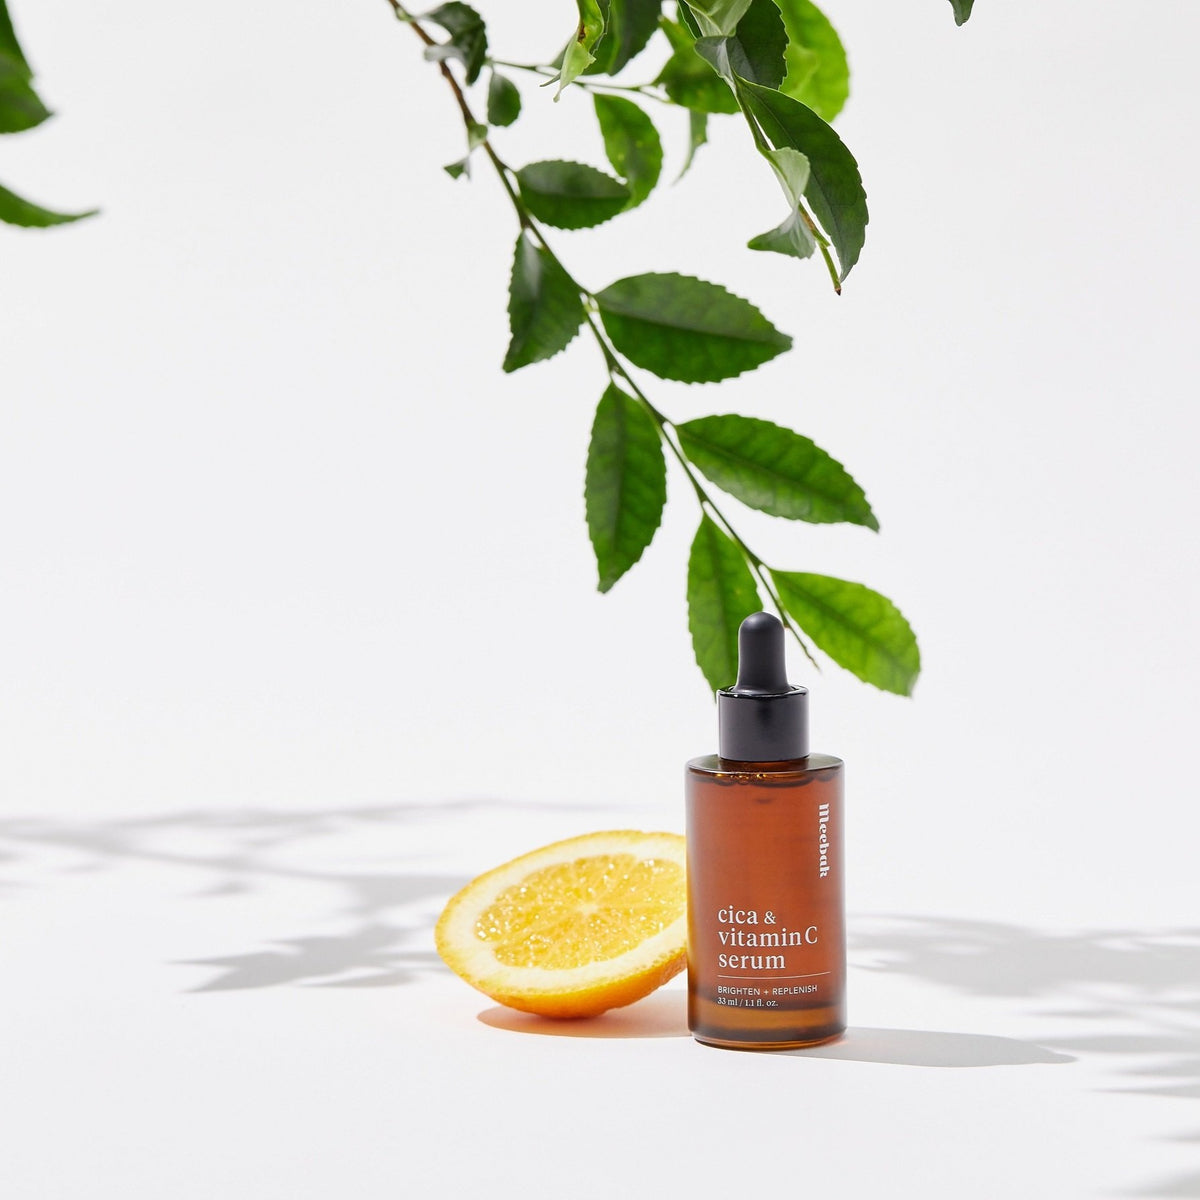 Cica & Vitamin C Serum